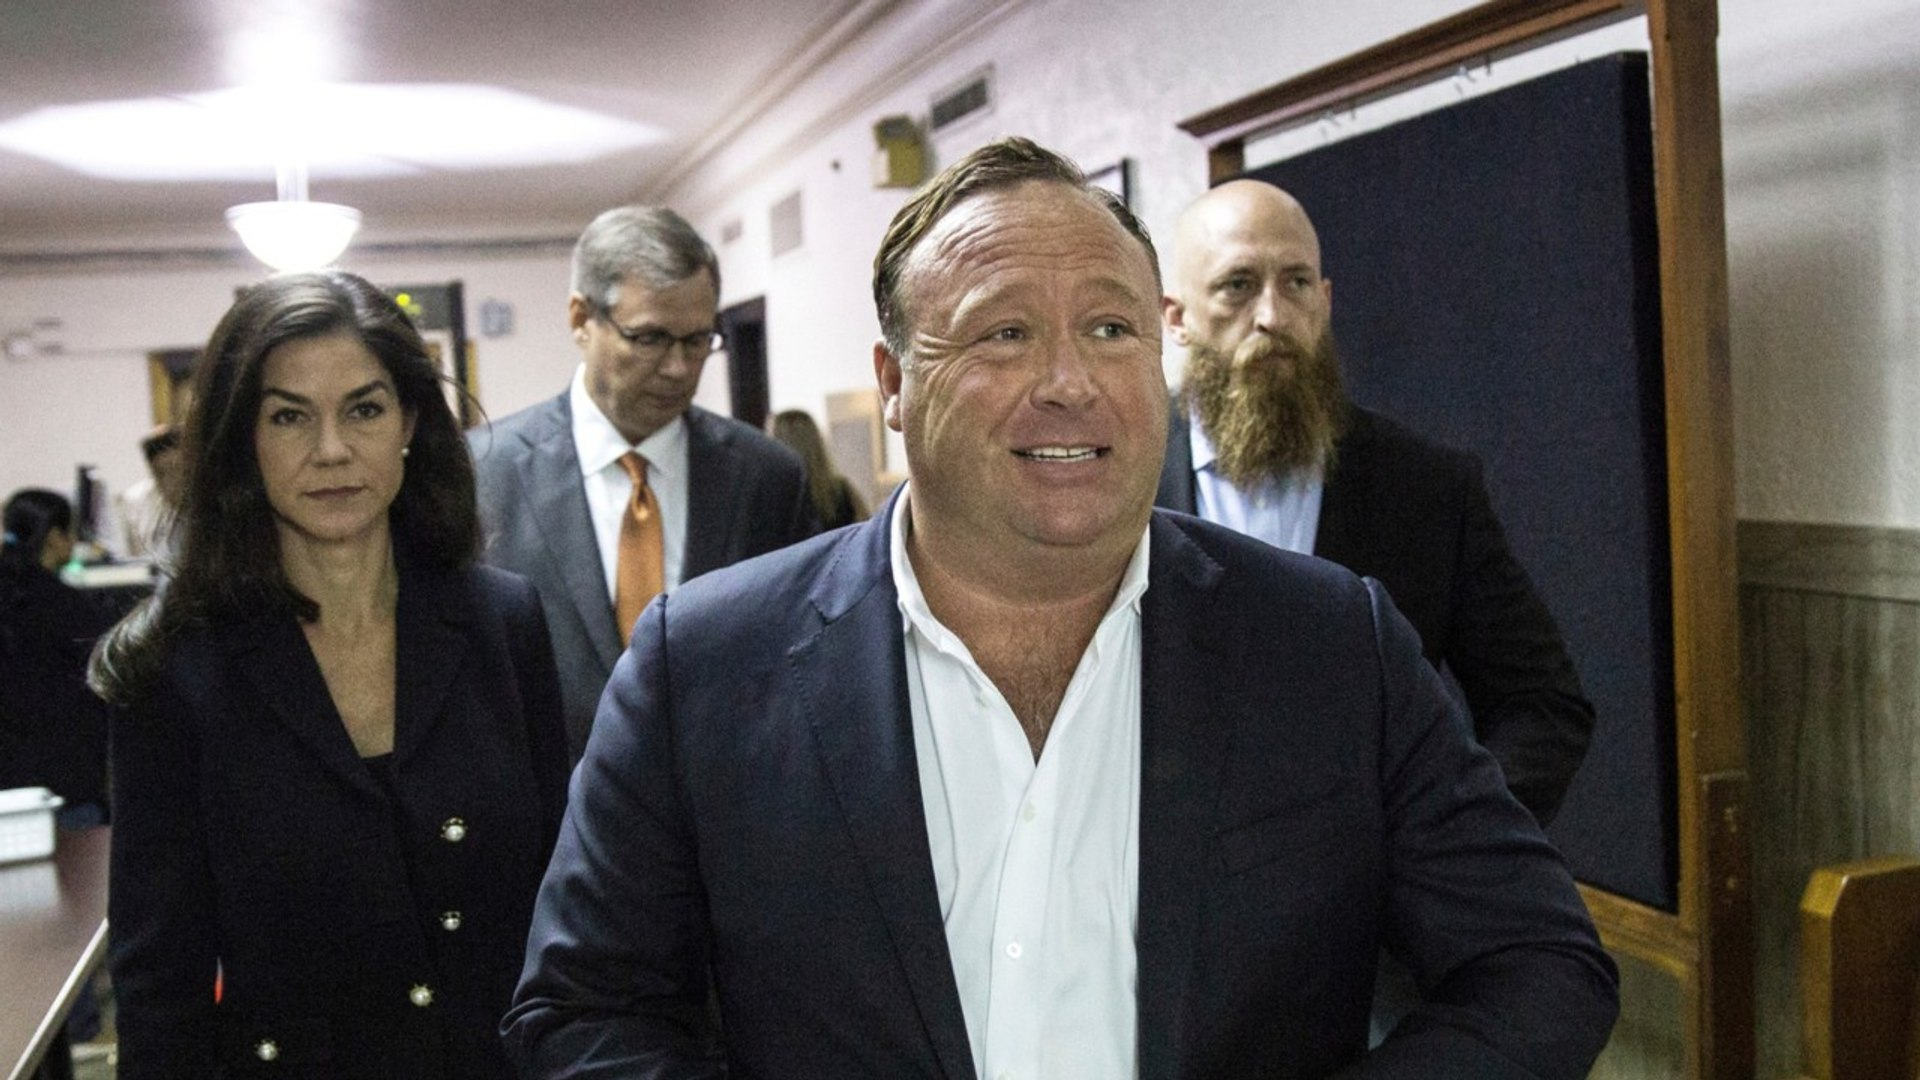 Boston Man Files Defamation Lawsuit Against Infowars